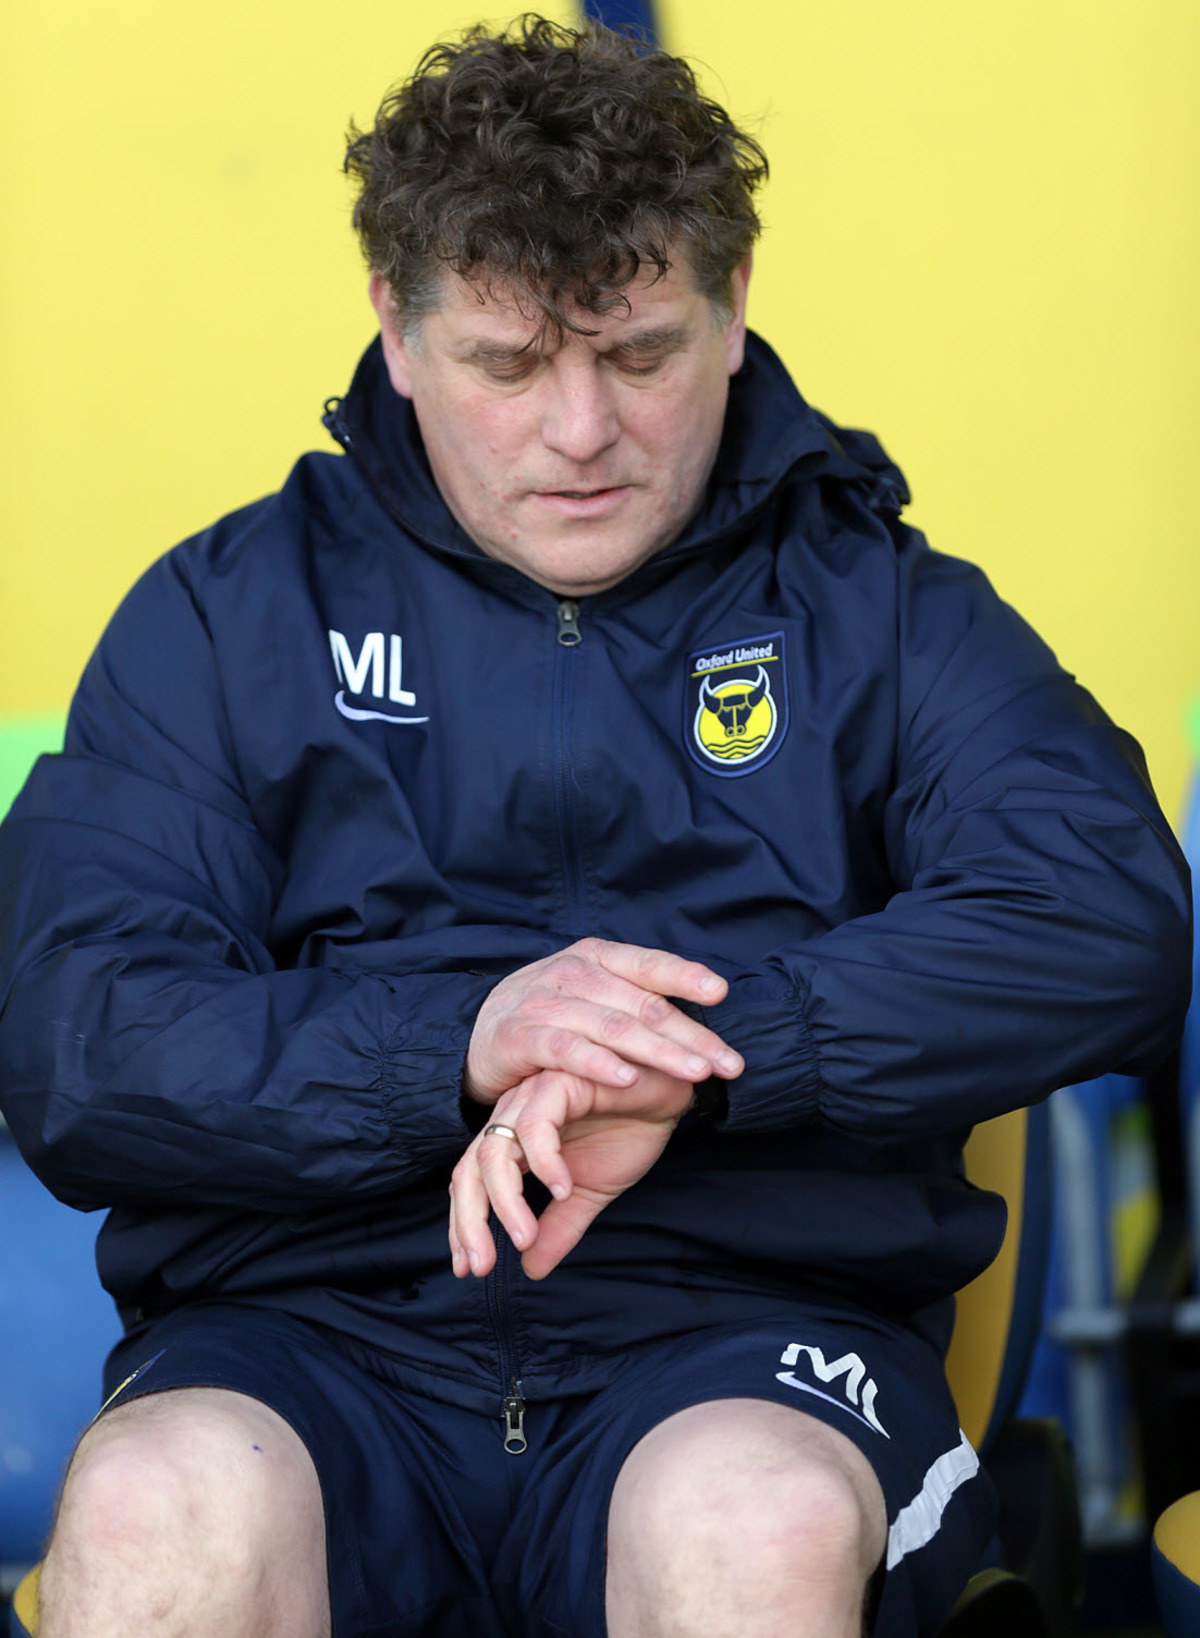 Caretaker boss Mickey Lewis checks the time during Saturday's 3-0 win over Mansfield, but he expects a harder test at Newport tonight